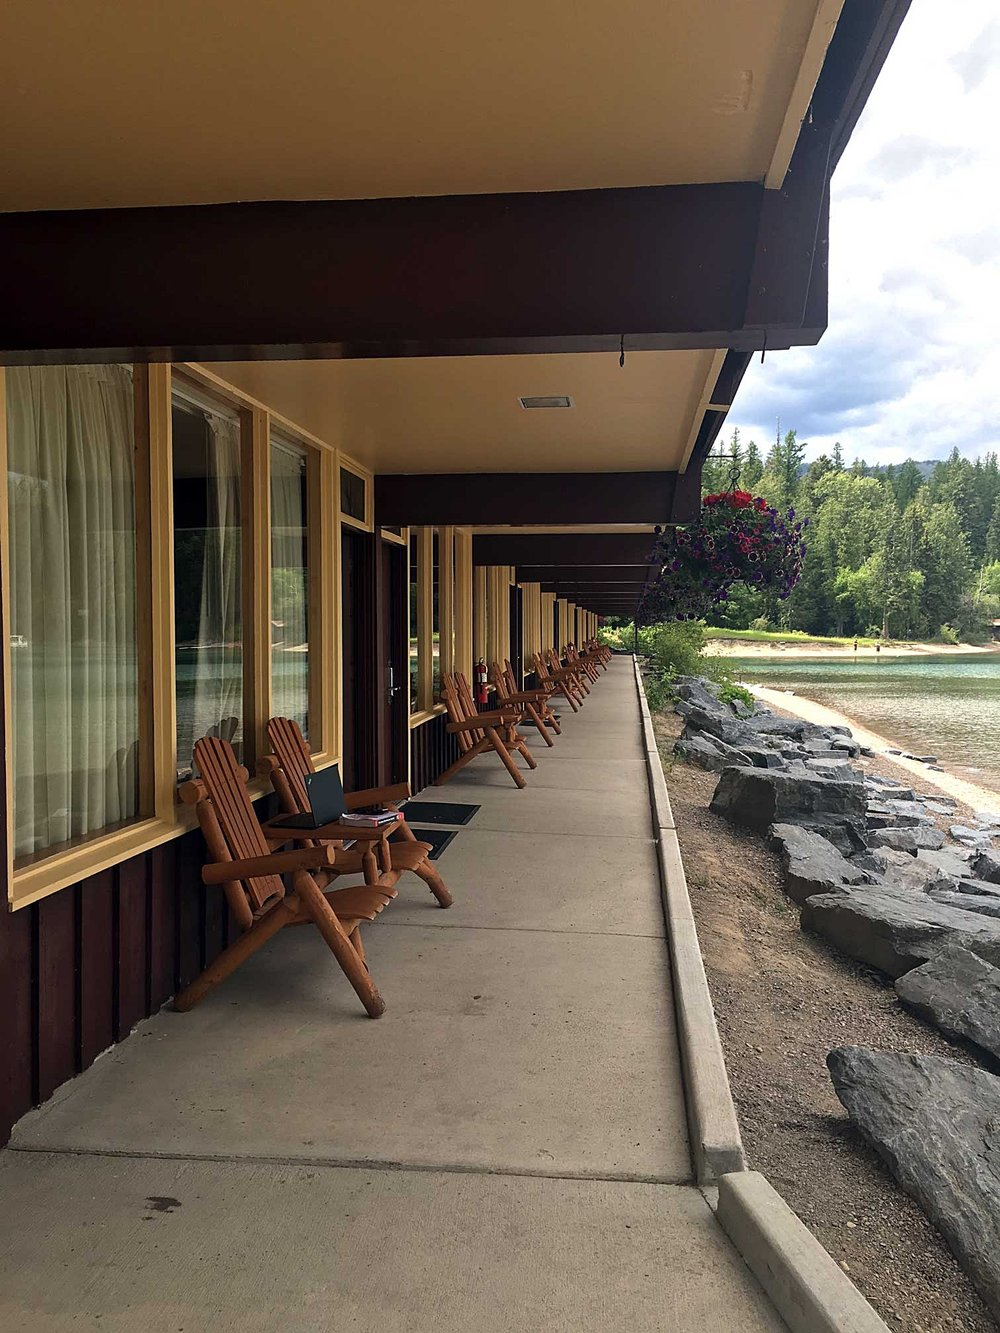 The Village Inn, a Xanterra lodge on Lake McDonald.